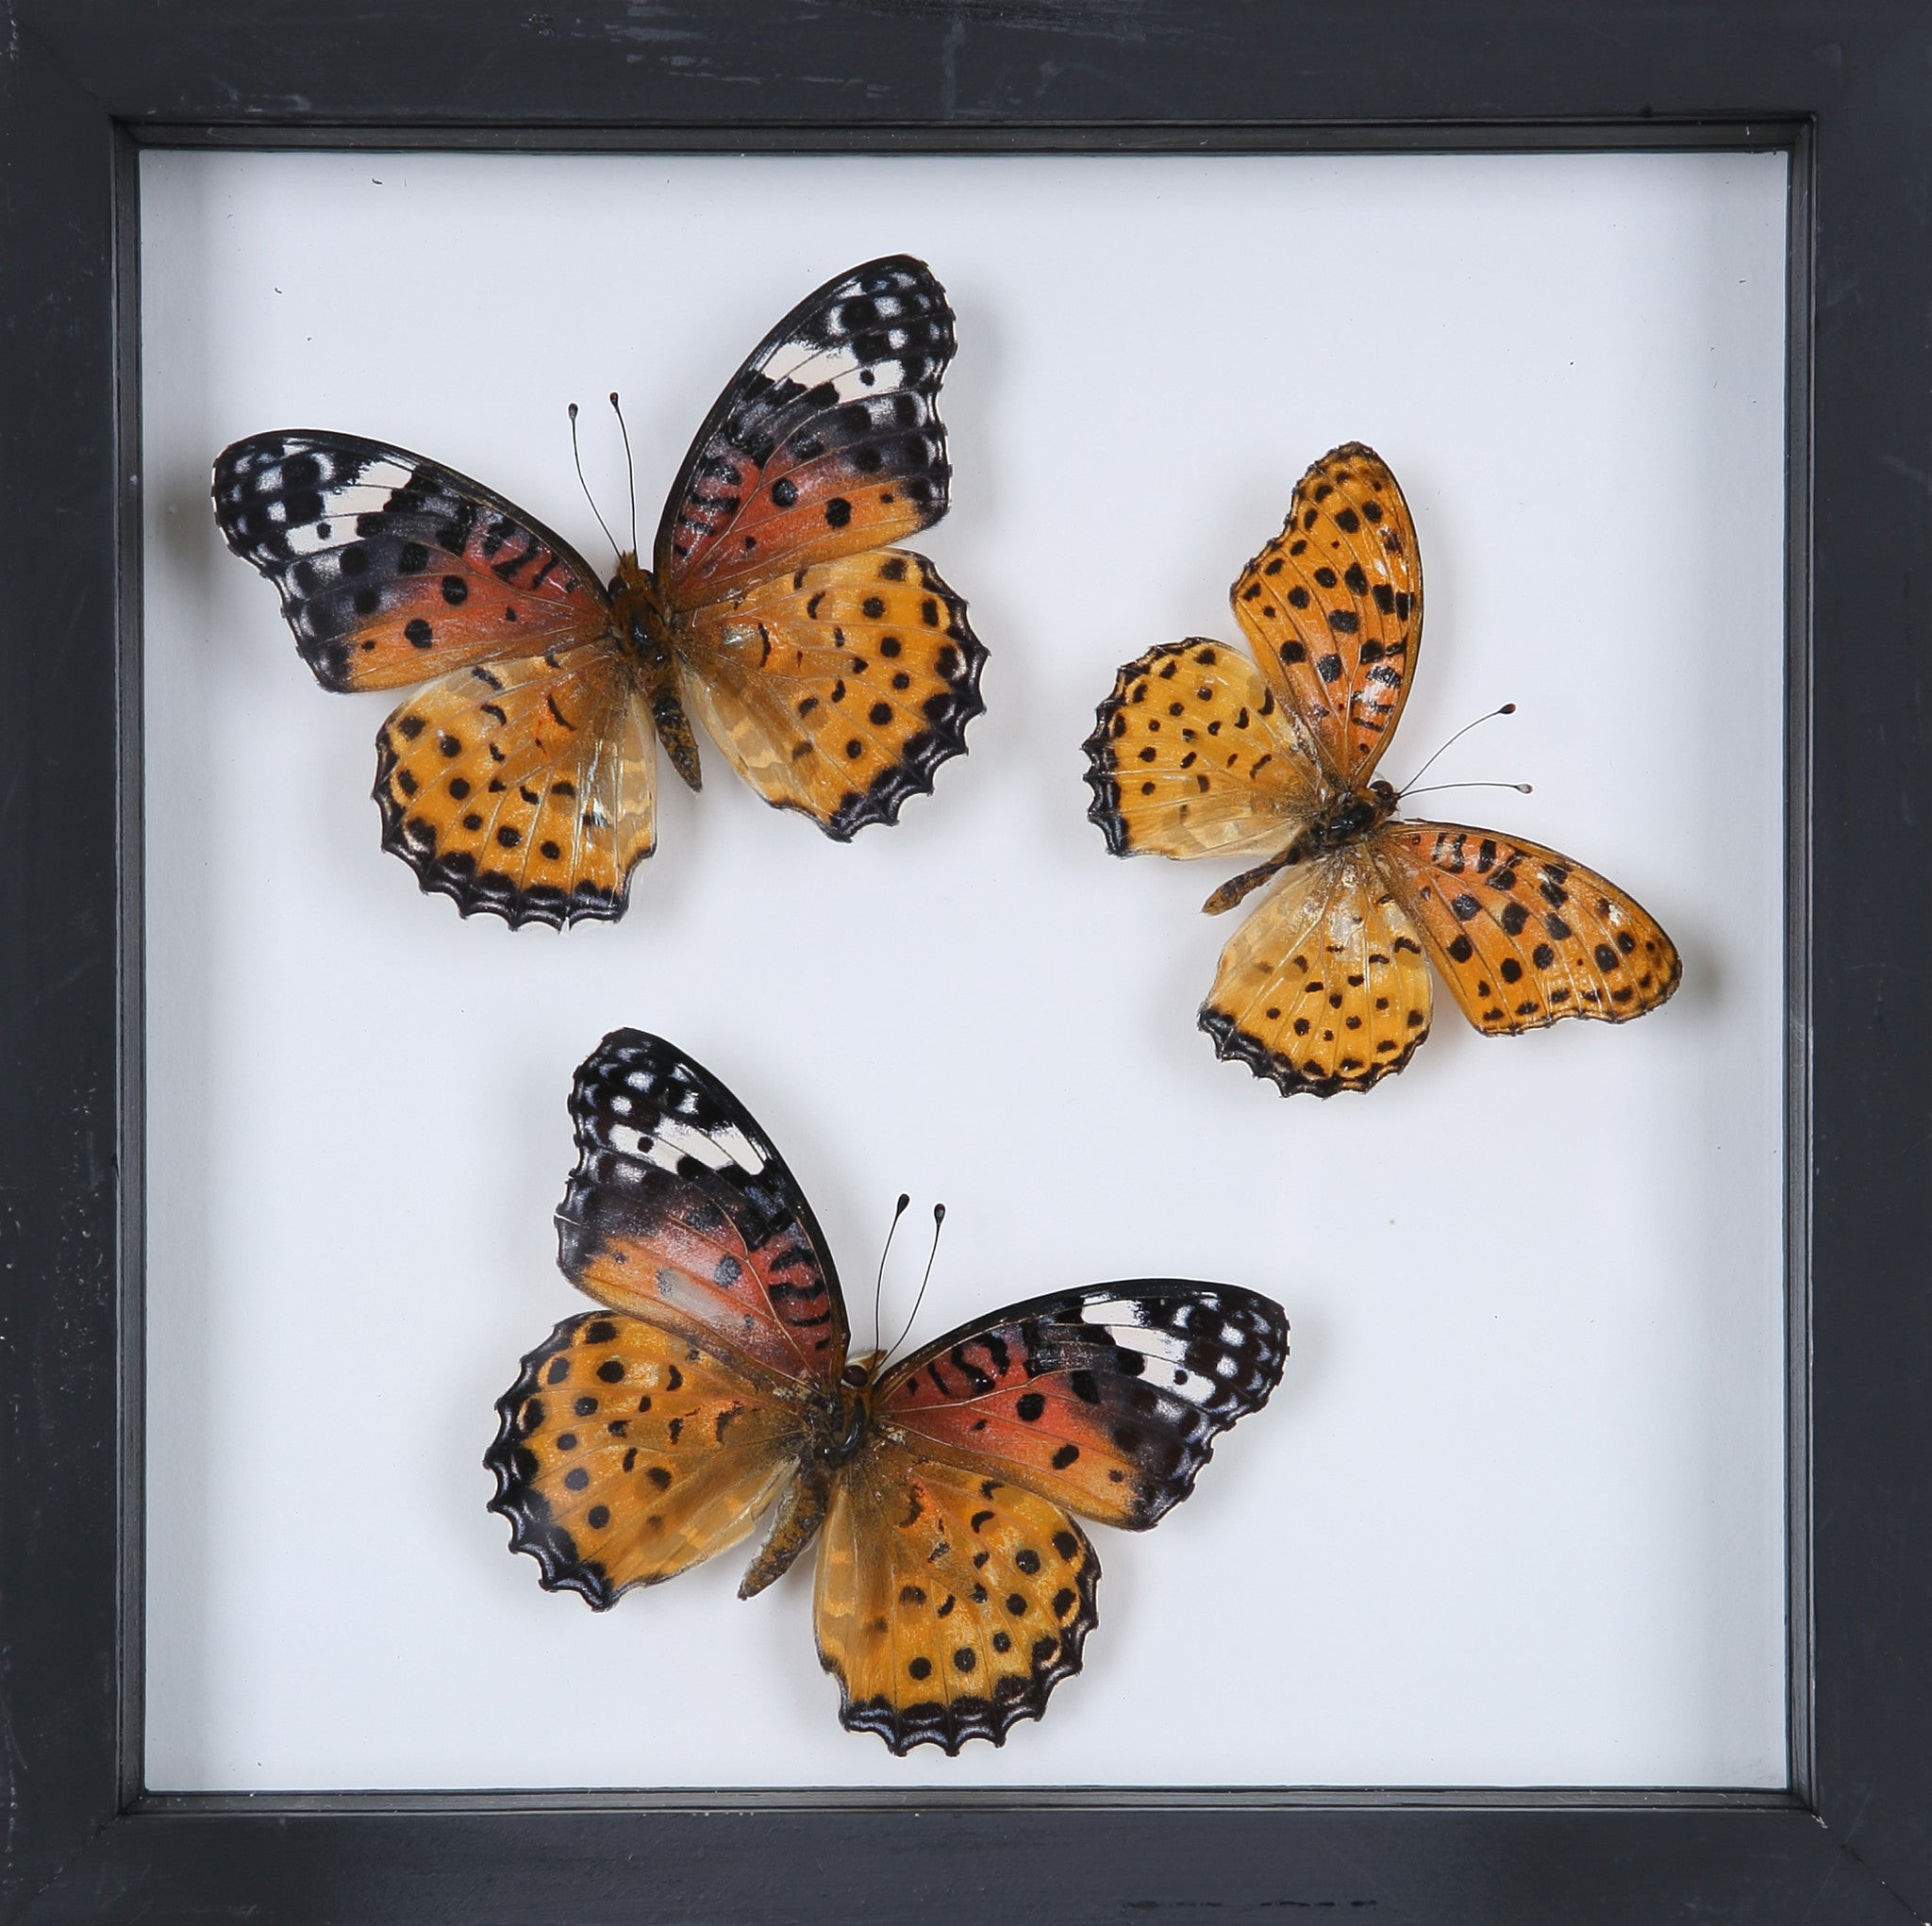 Stunning Mounted Butterflies | Framed Butterflies 12-055 – Natural ...